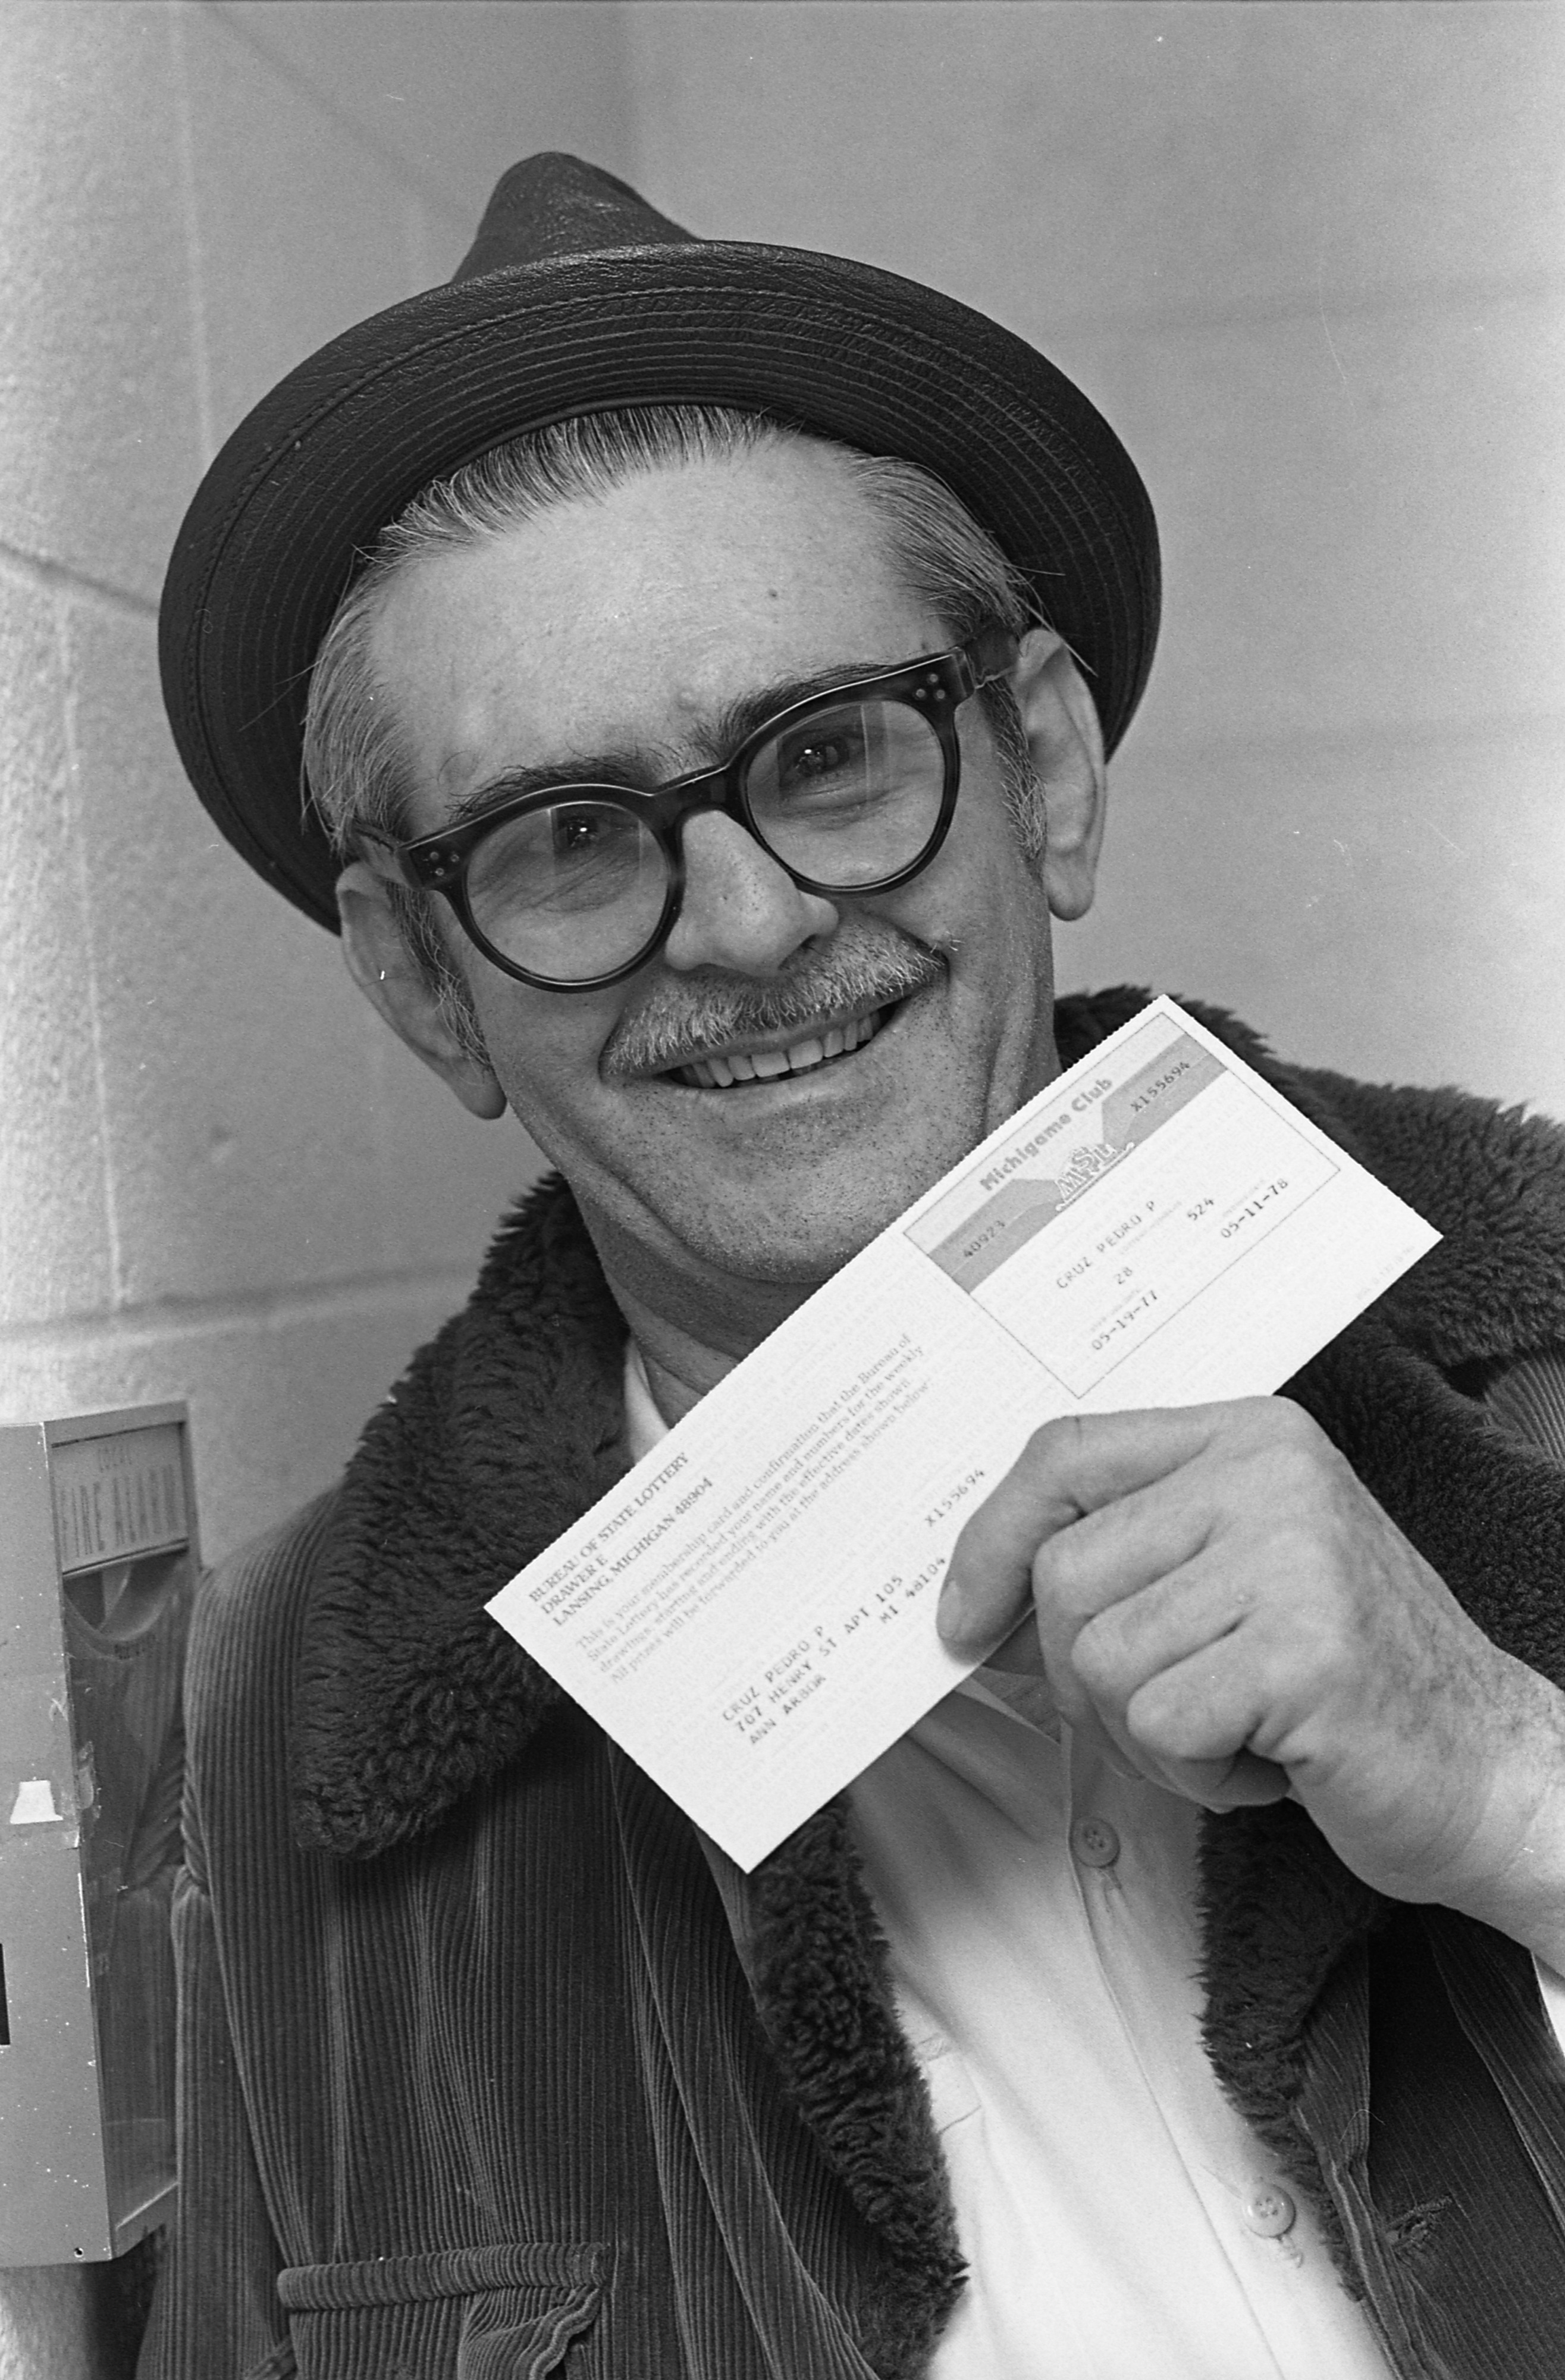 Pedro Cruz Shows Off Lottery Card That Gives Him A Chance To Win Millions, January 6, 1978 image